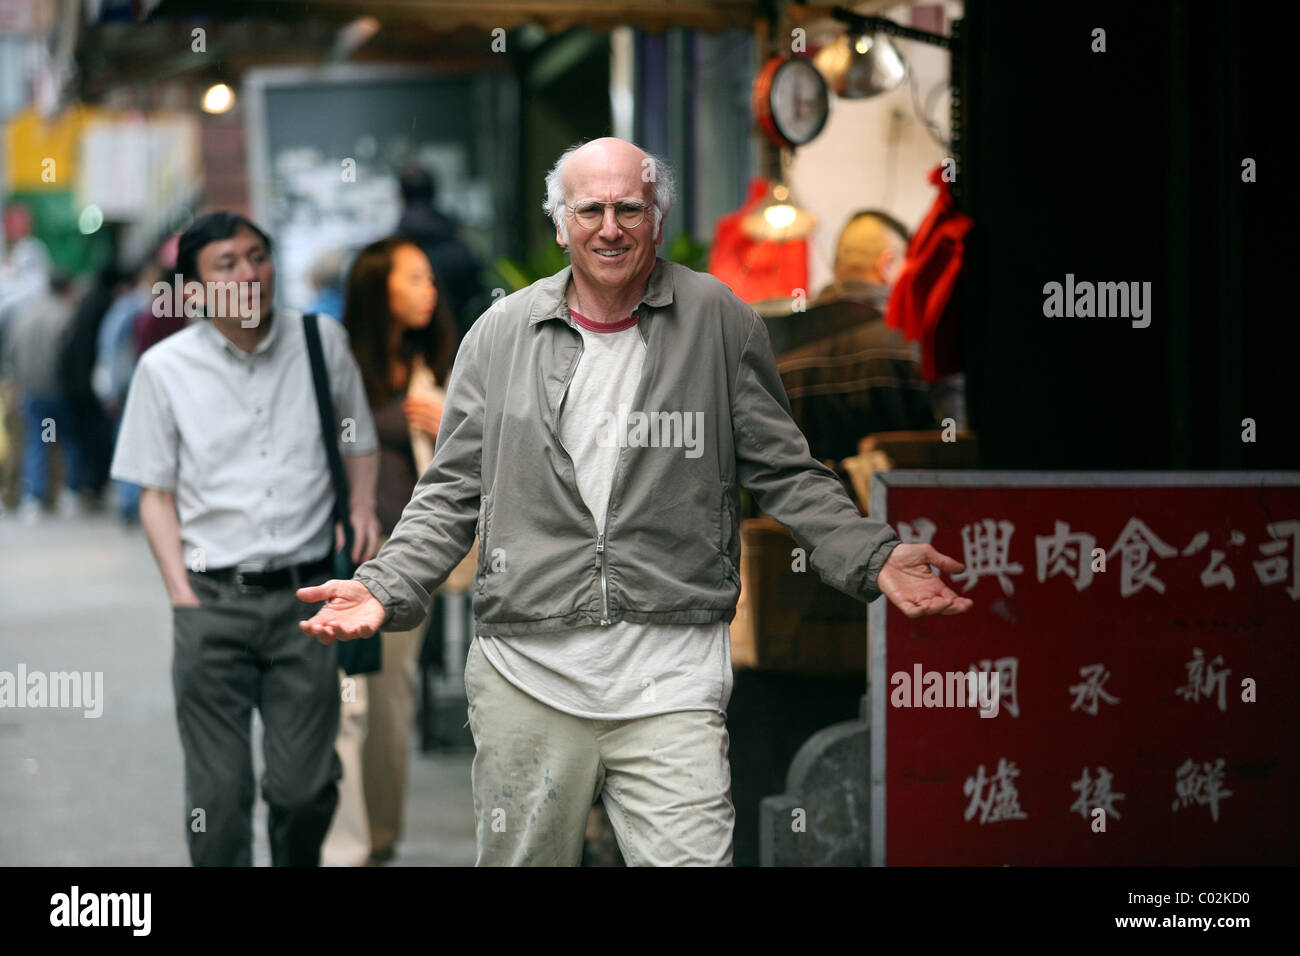 LARRY DAVID WHATEVER WORKS (2009) - Stock Image